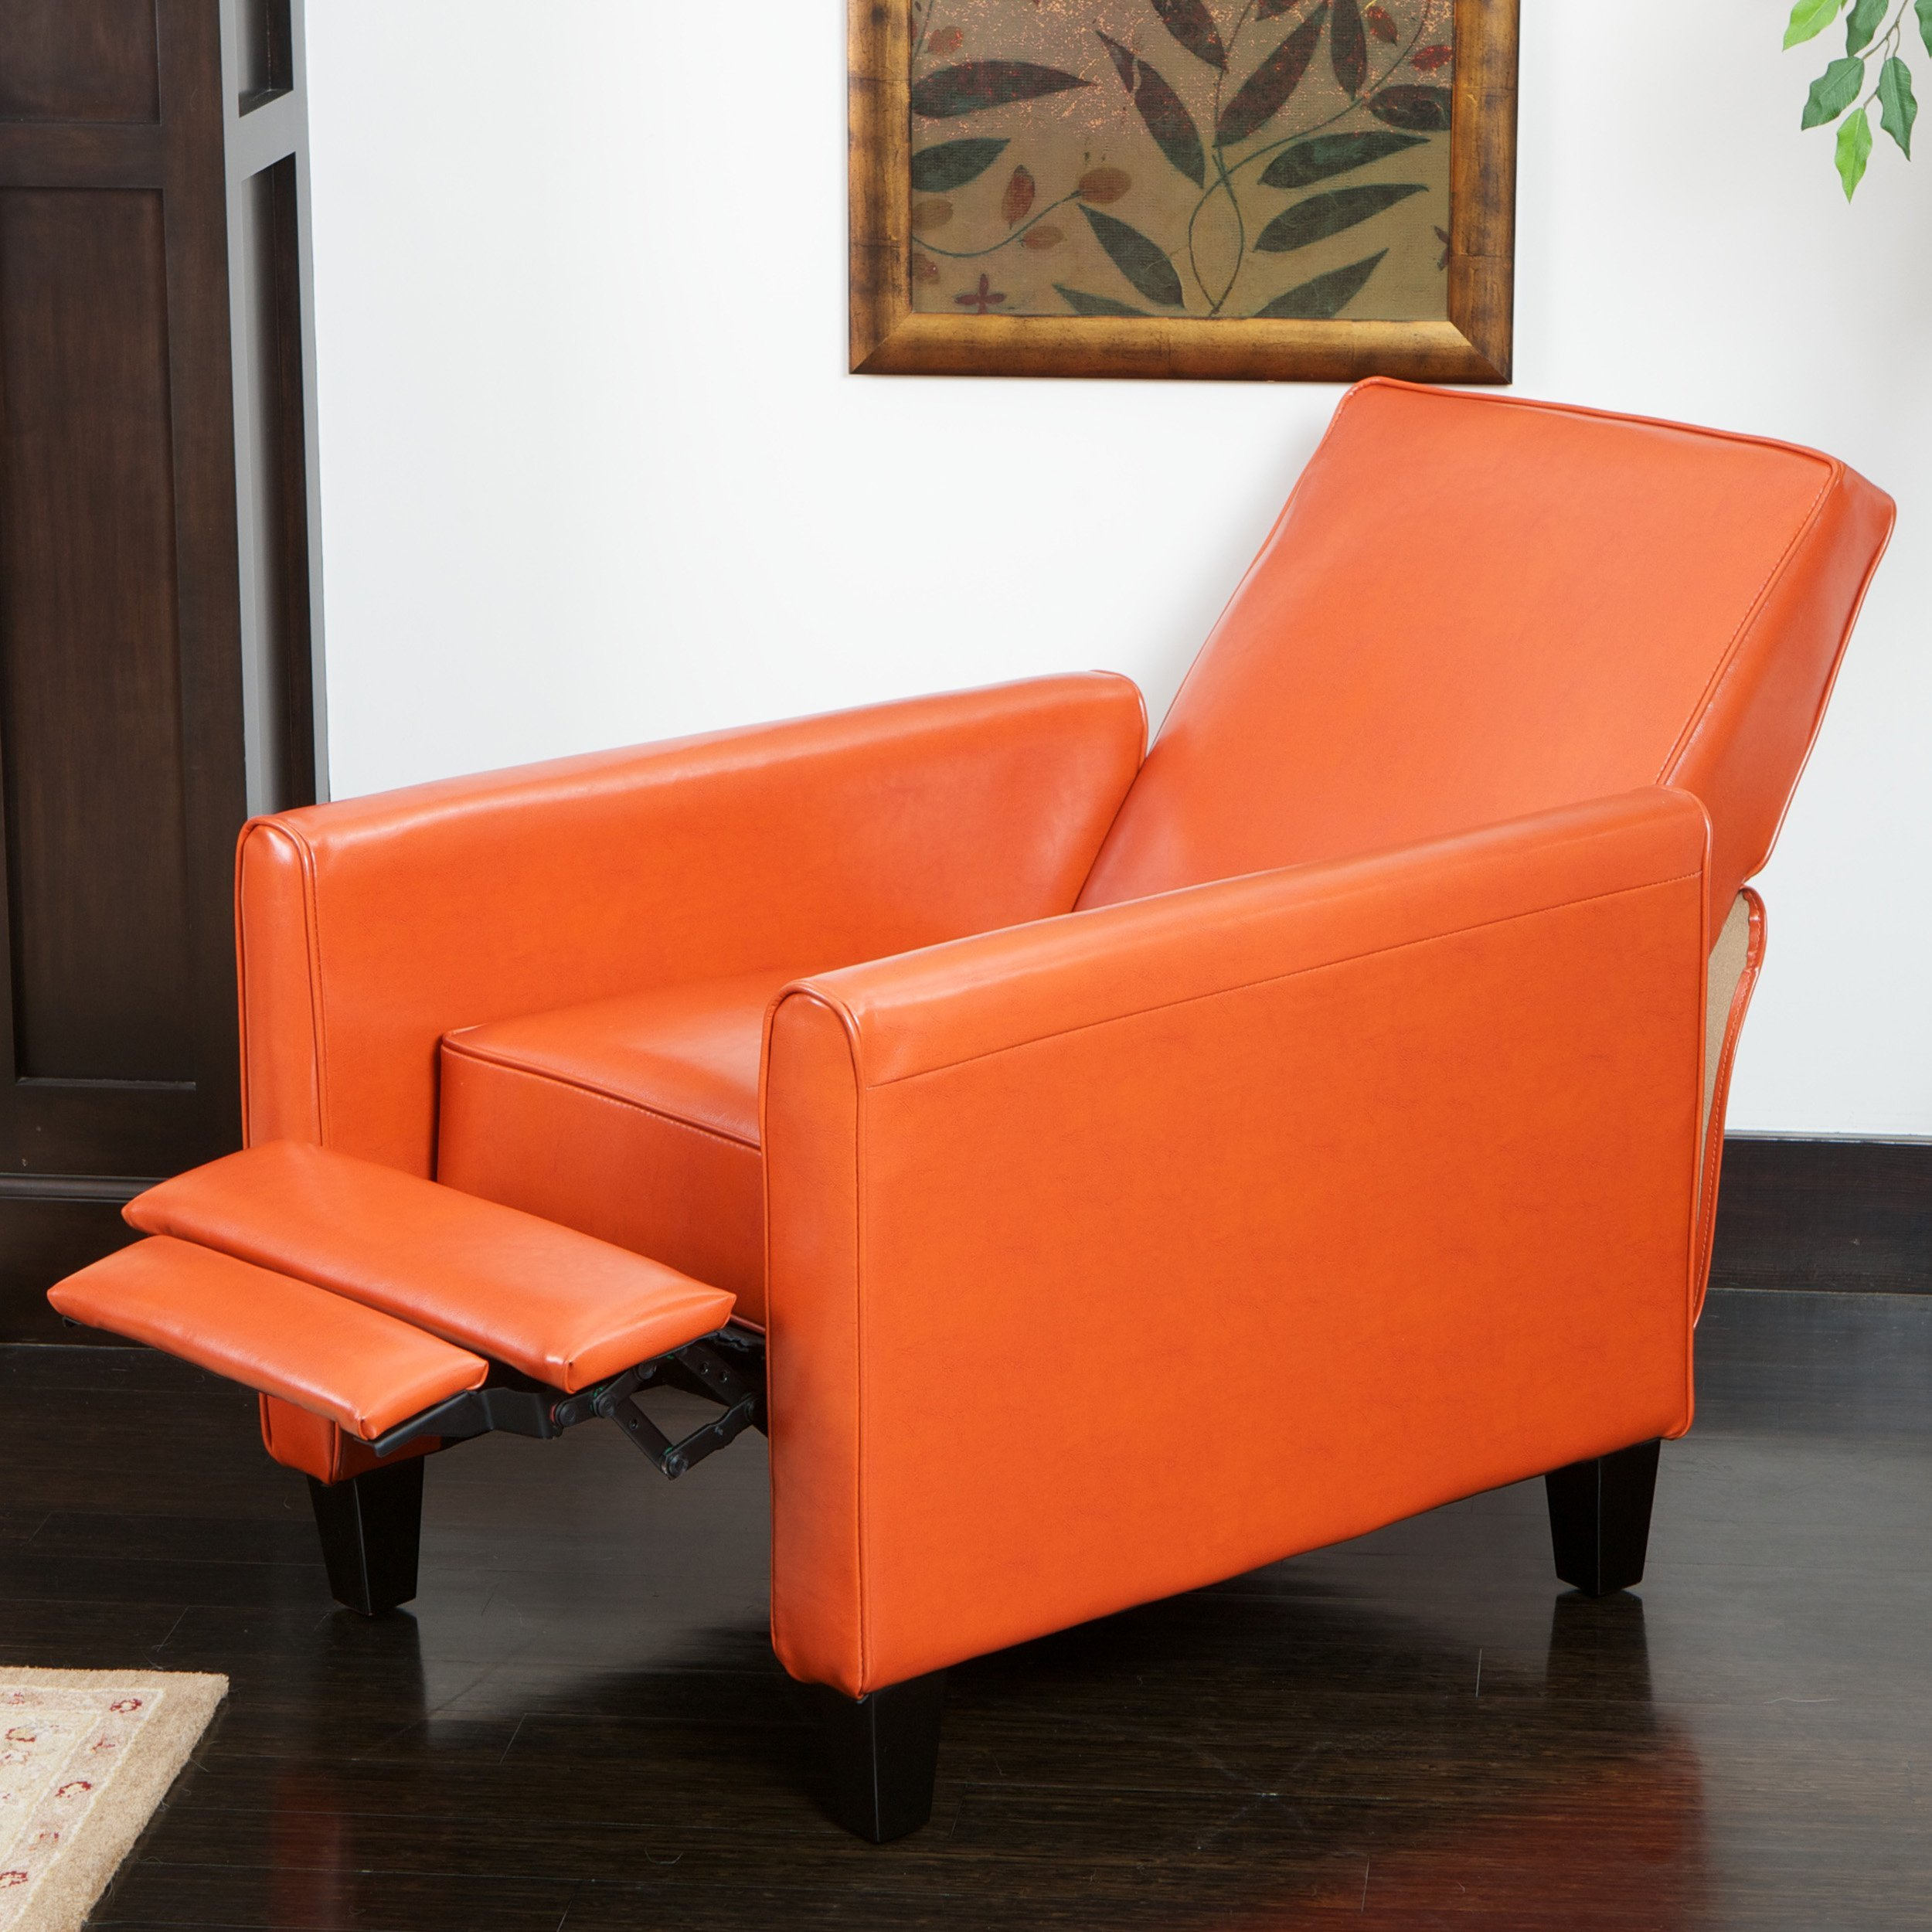 Orange Leather Chair Lucas Orange Leather Recliner Club Chair Furniturendecor